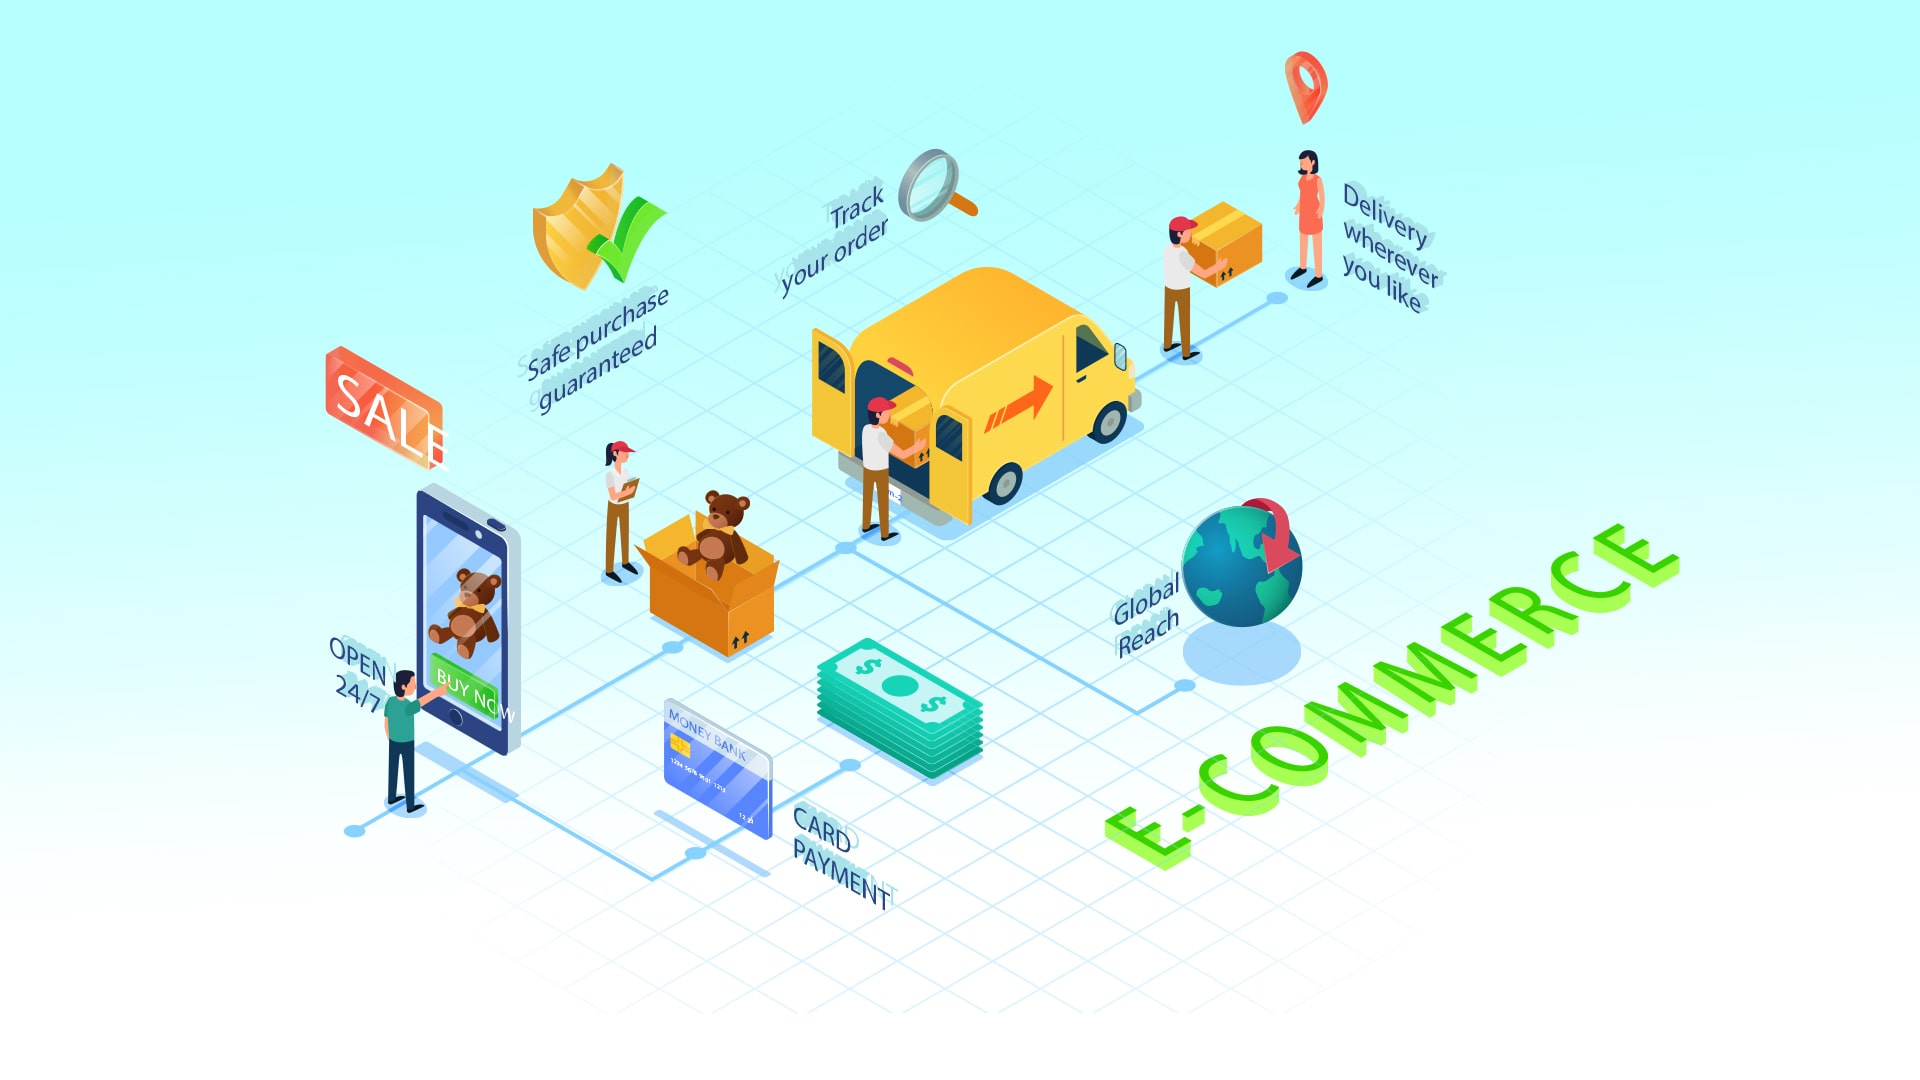 What are The E-commerce business models